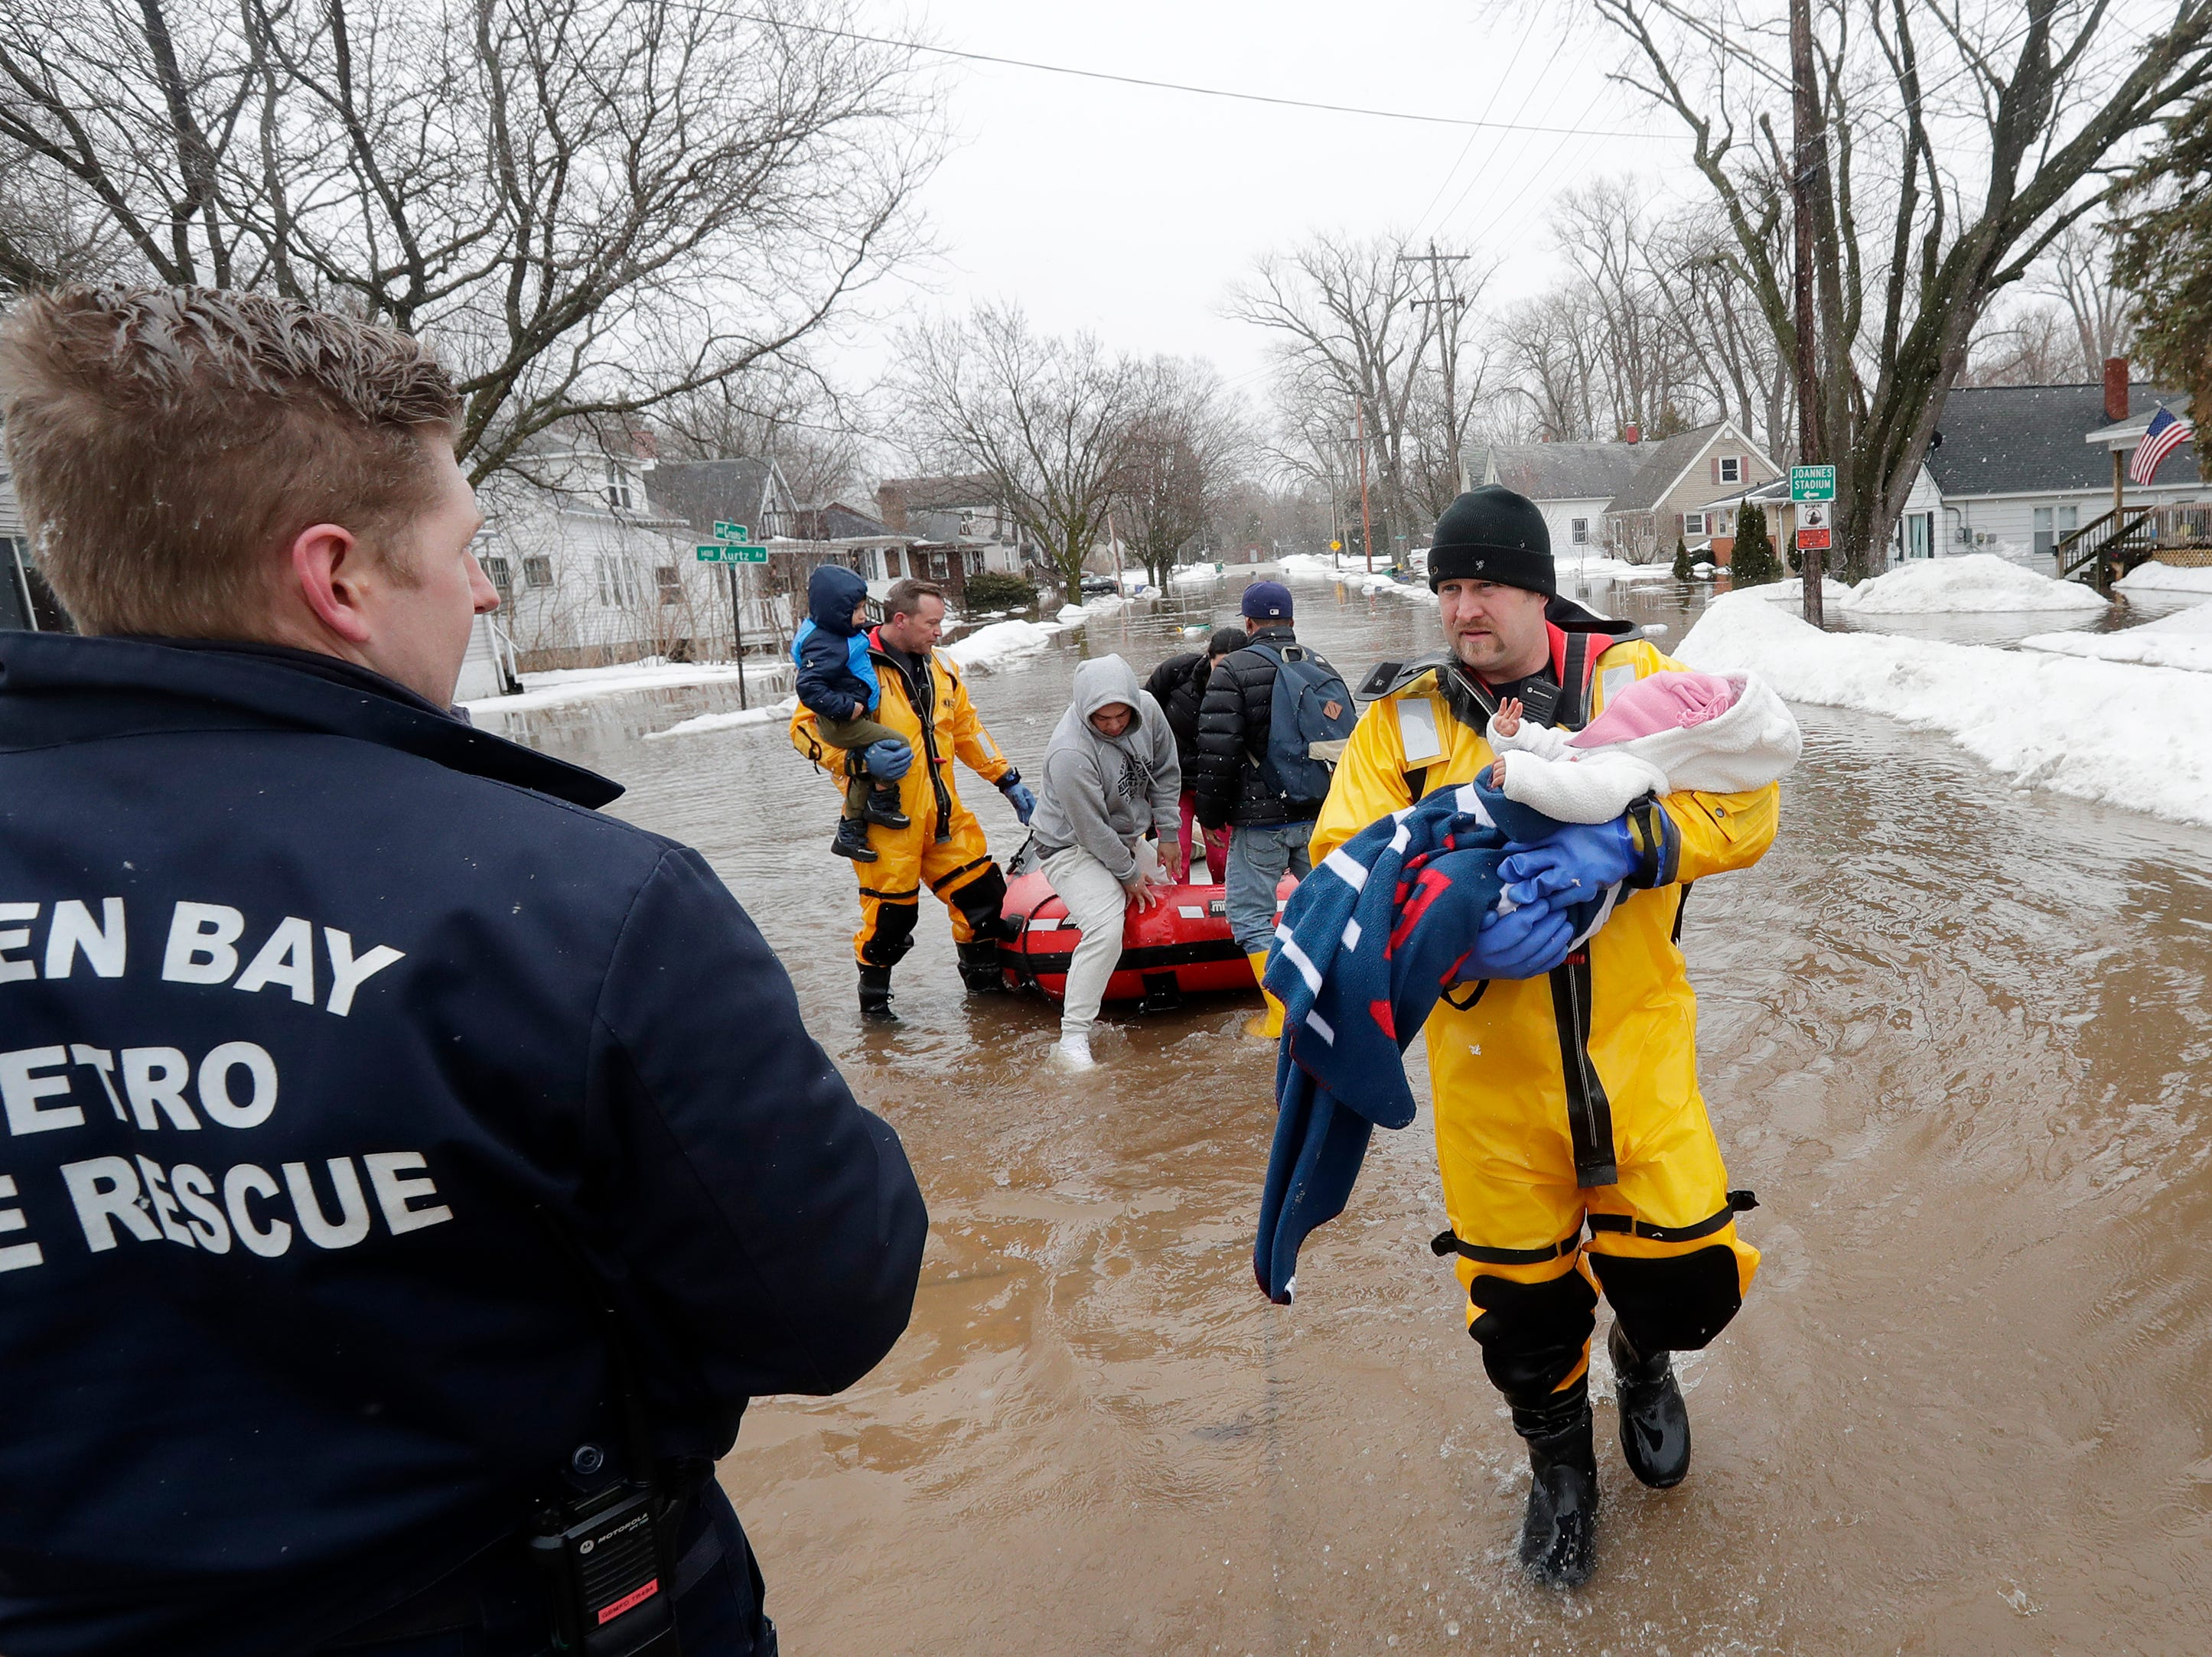 Firefighter Brian Farr carries a baby from the boat as the GBFD assisted residents with home evacuations on Crooks Street due to the East river flooding on Friday, March 15, 2019 in Green Bay, Wis.